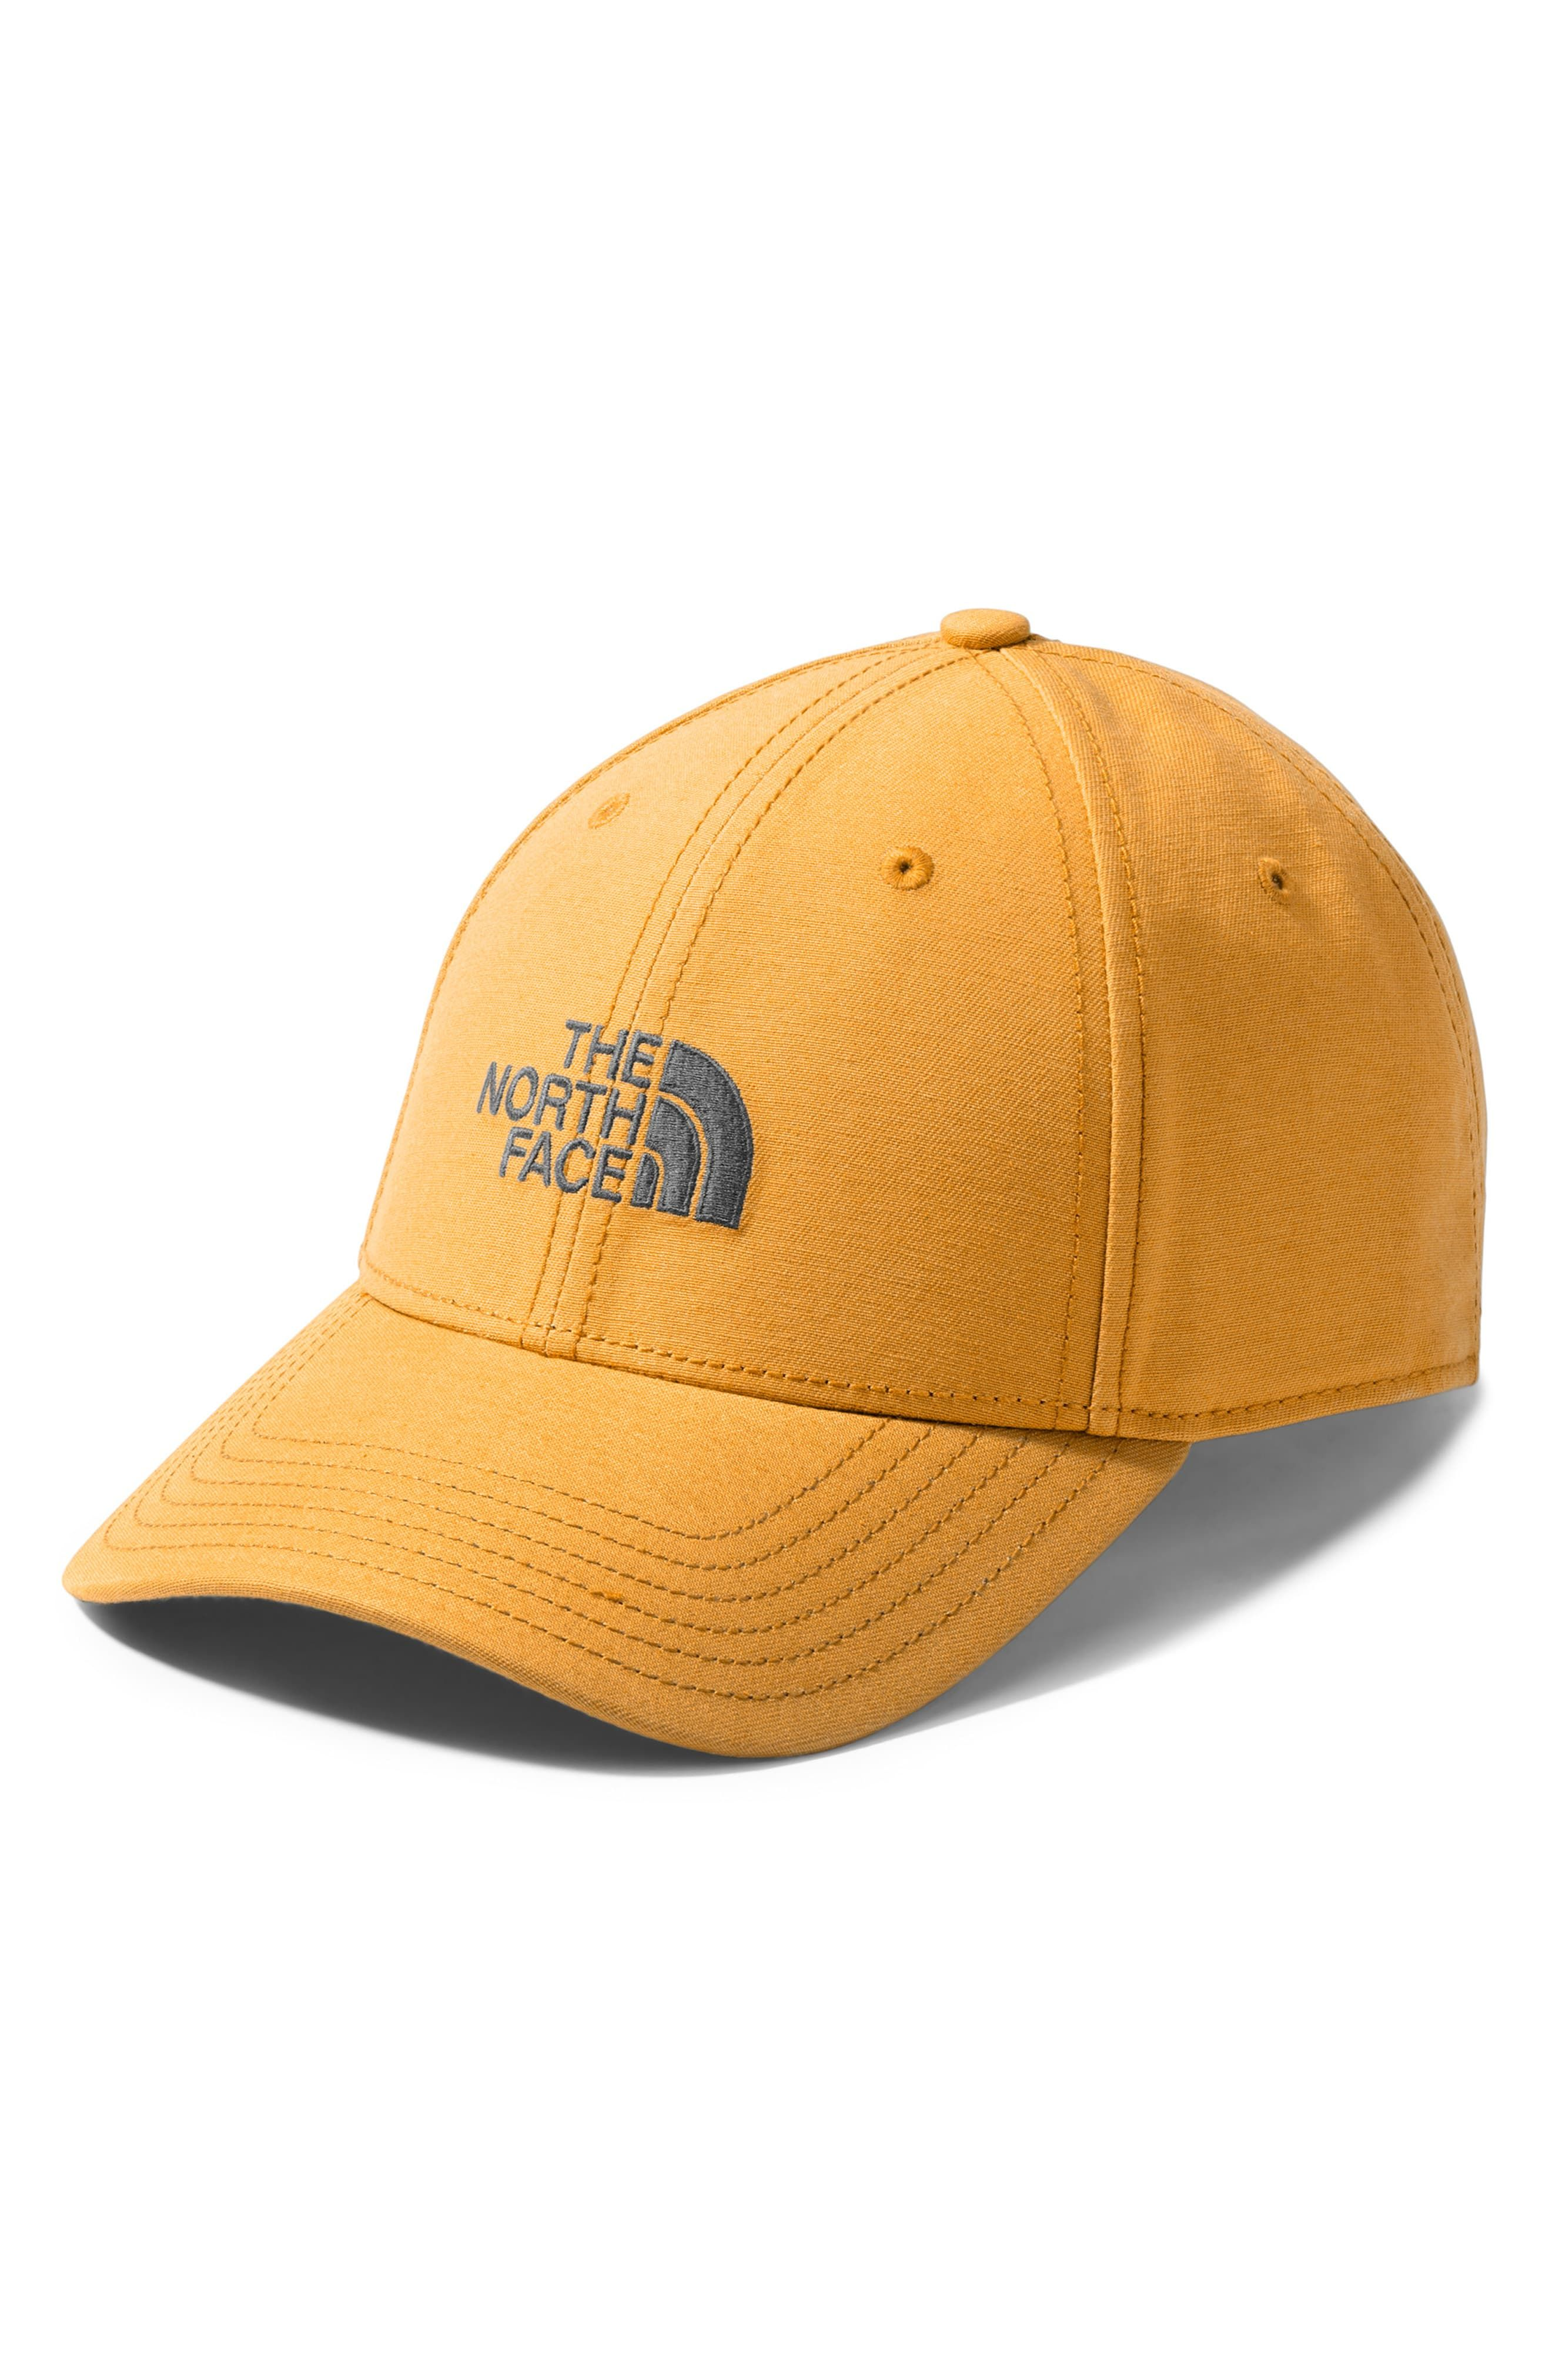 ebb29388d Men's The North Face 66 Classic Cap - Yellow in 2019 | Products ...